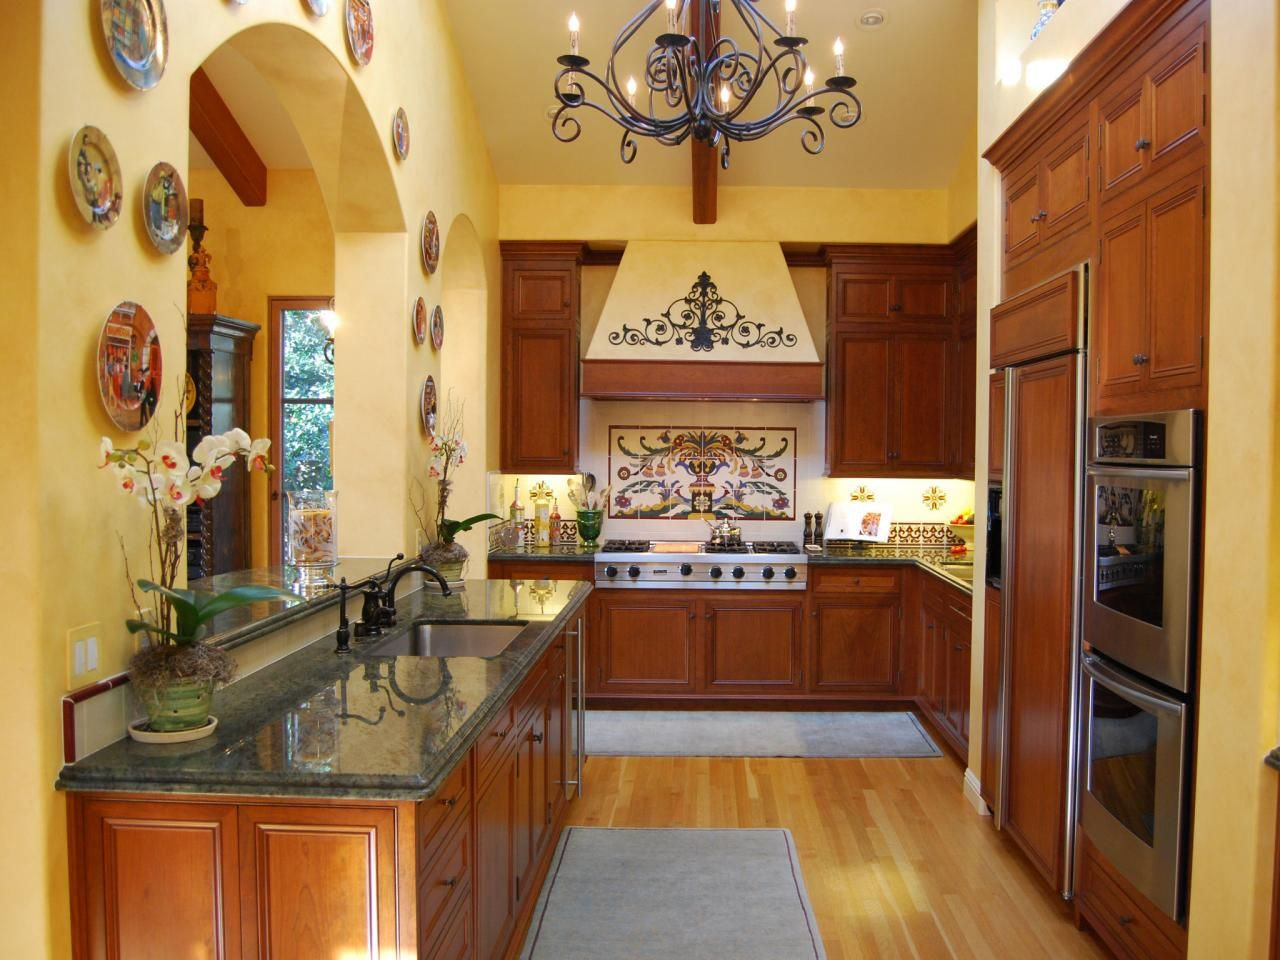 Small Farmhouse Kitchen Design Decor For Classic Interior within Small Farmhouse Plans With Pictures